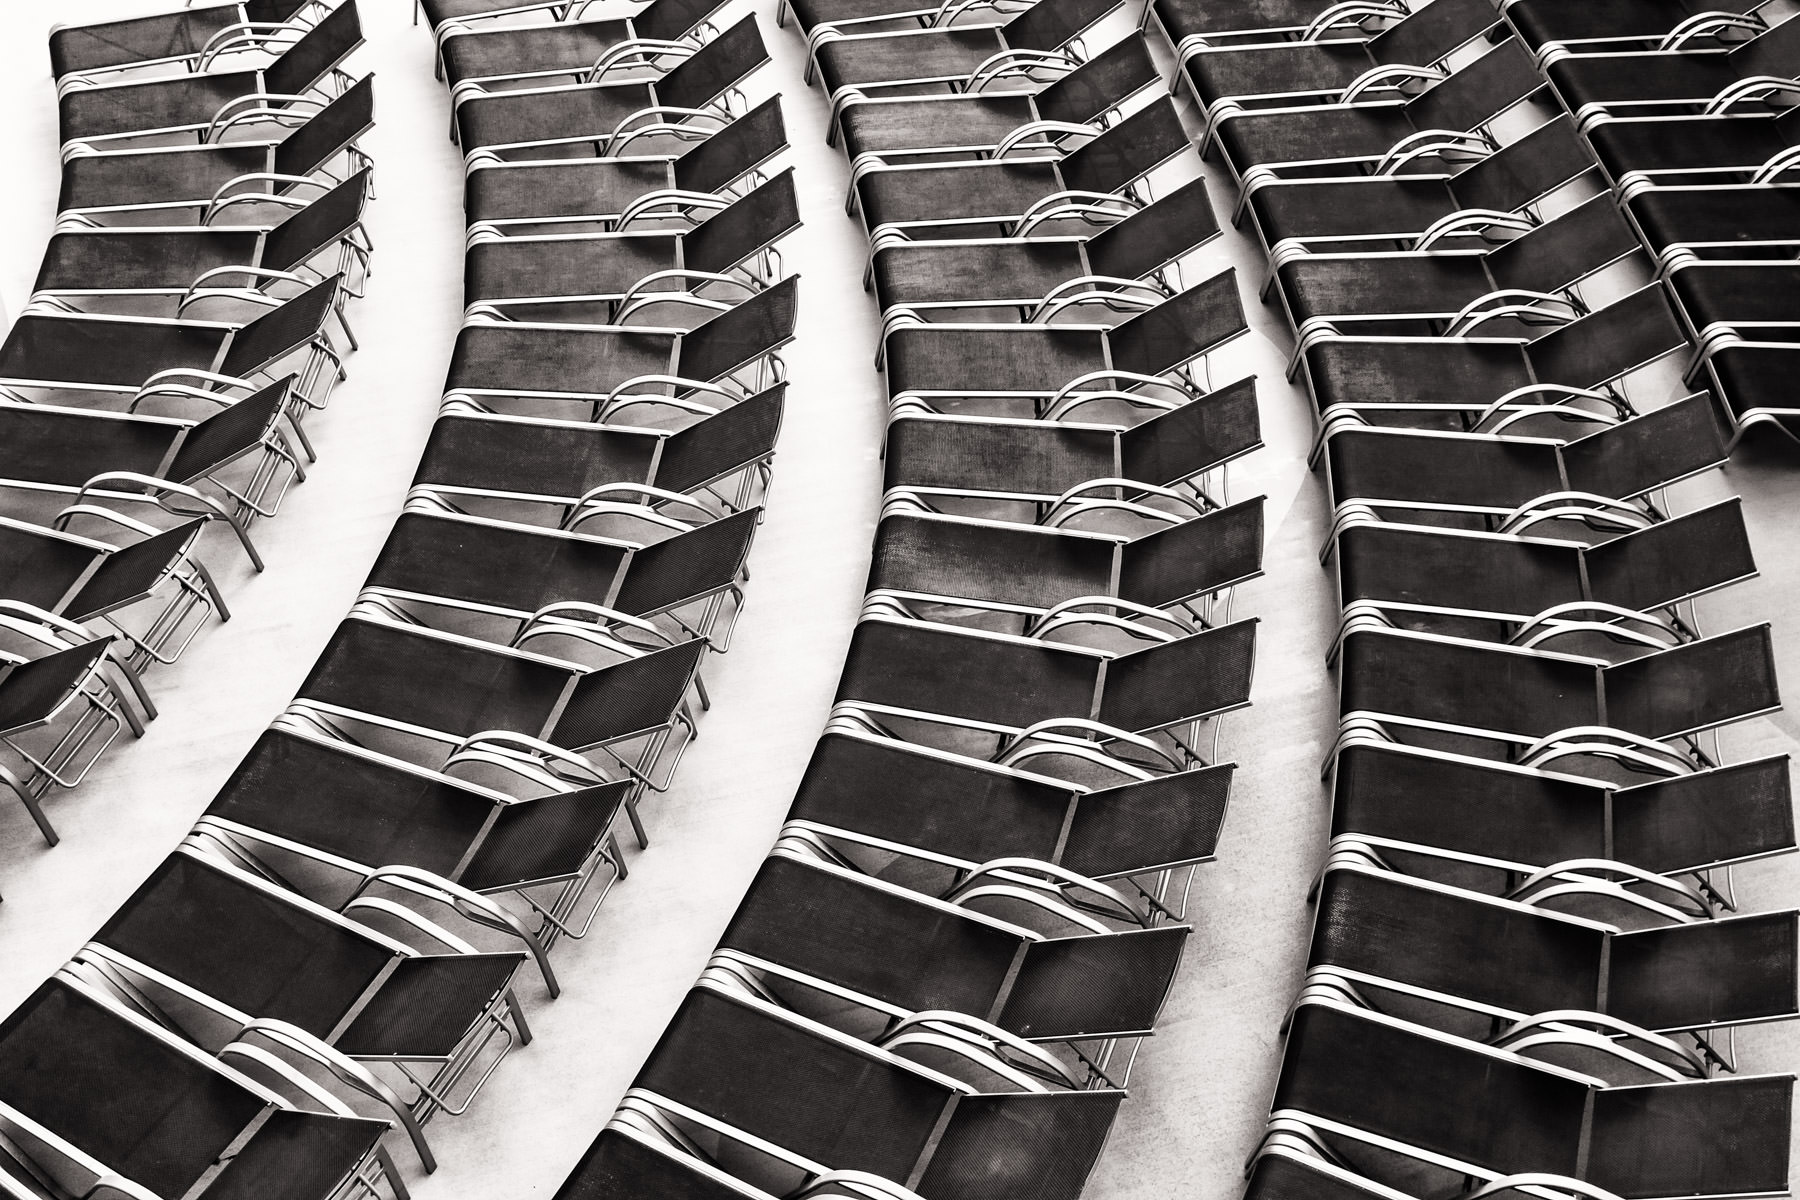 Deck chairs arranged in arcs await guests aboard the cruise ship Carnival Magic.